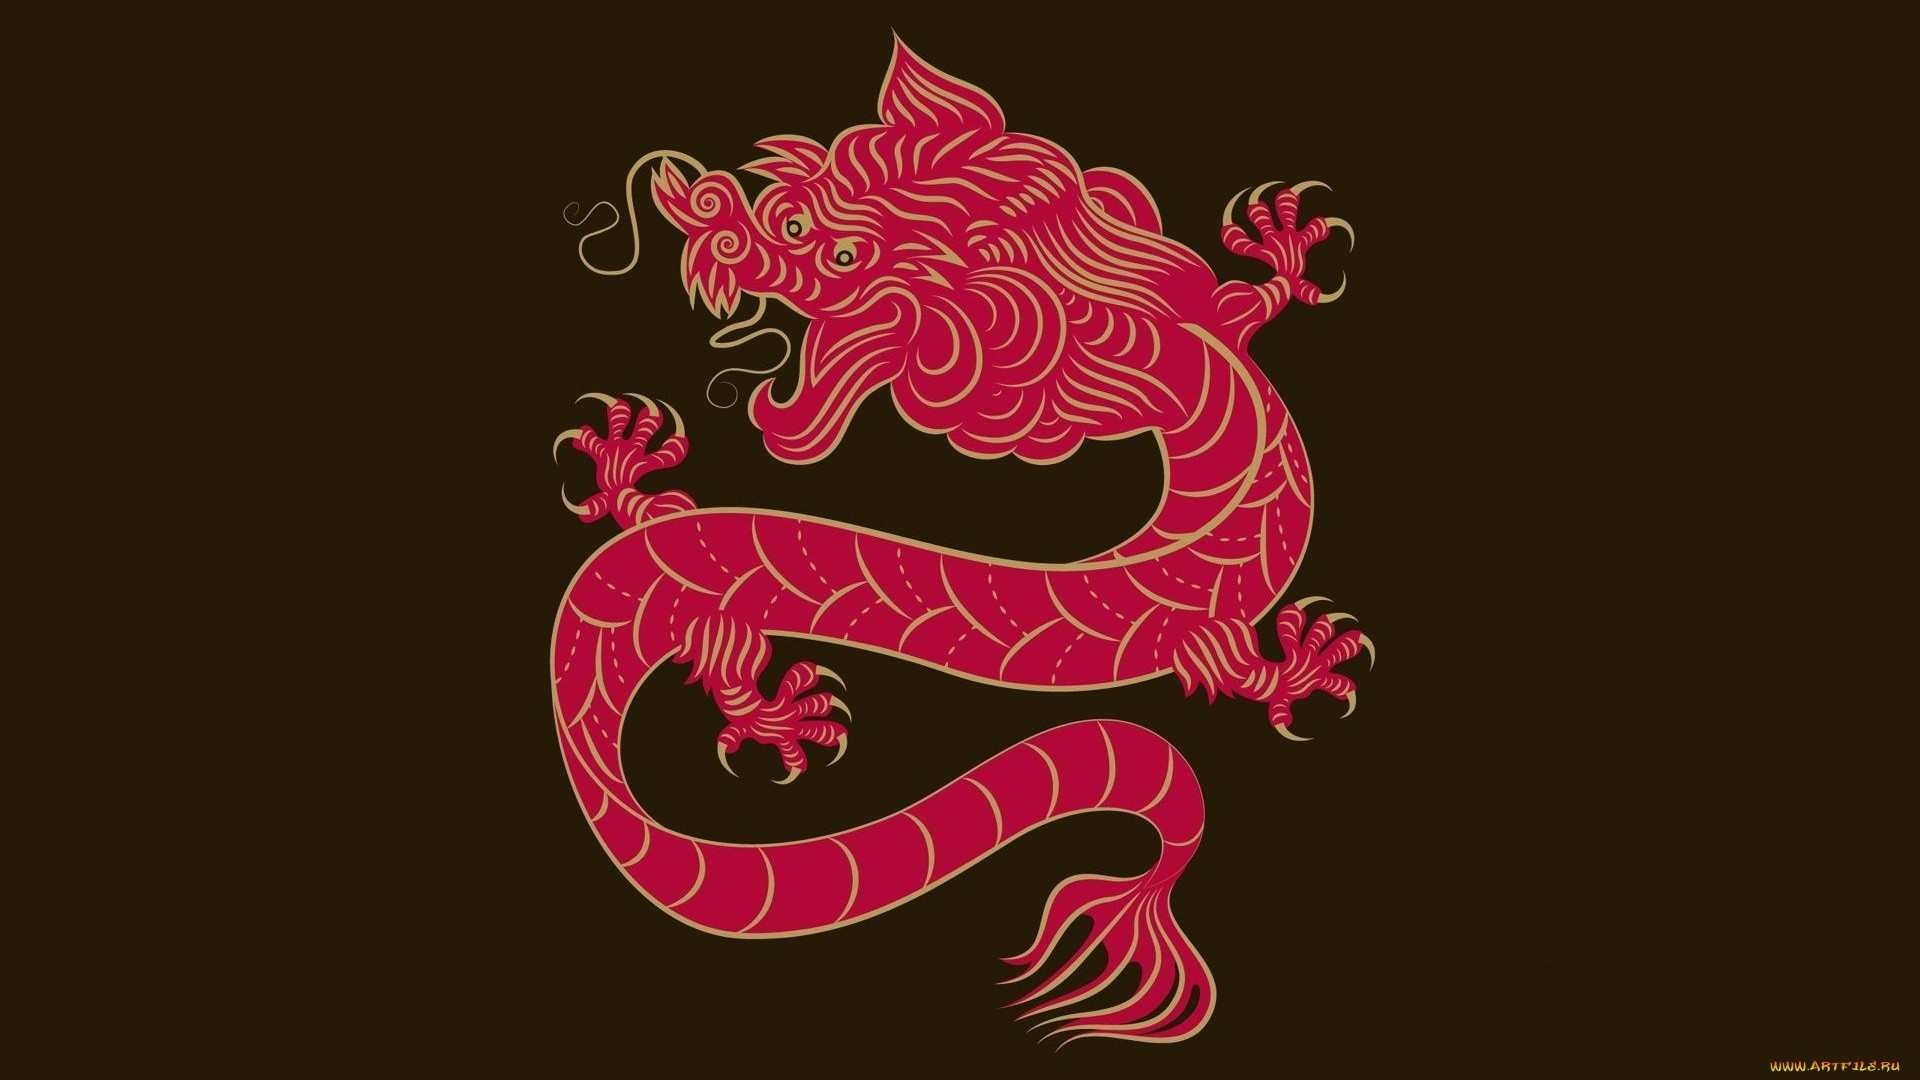 Chinese Dragon Desktop Wallpaper